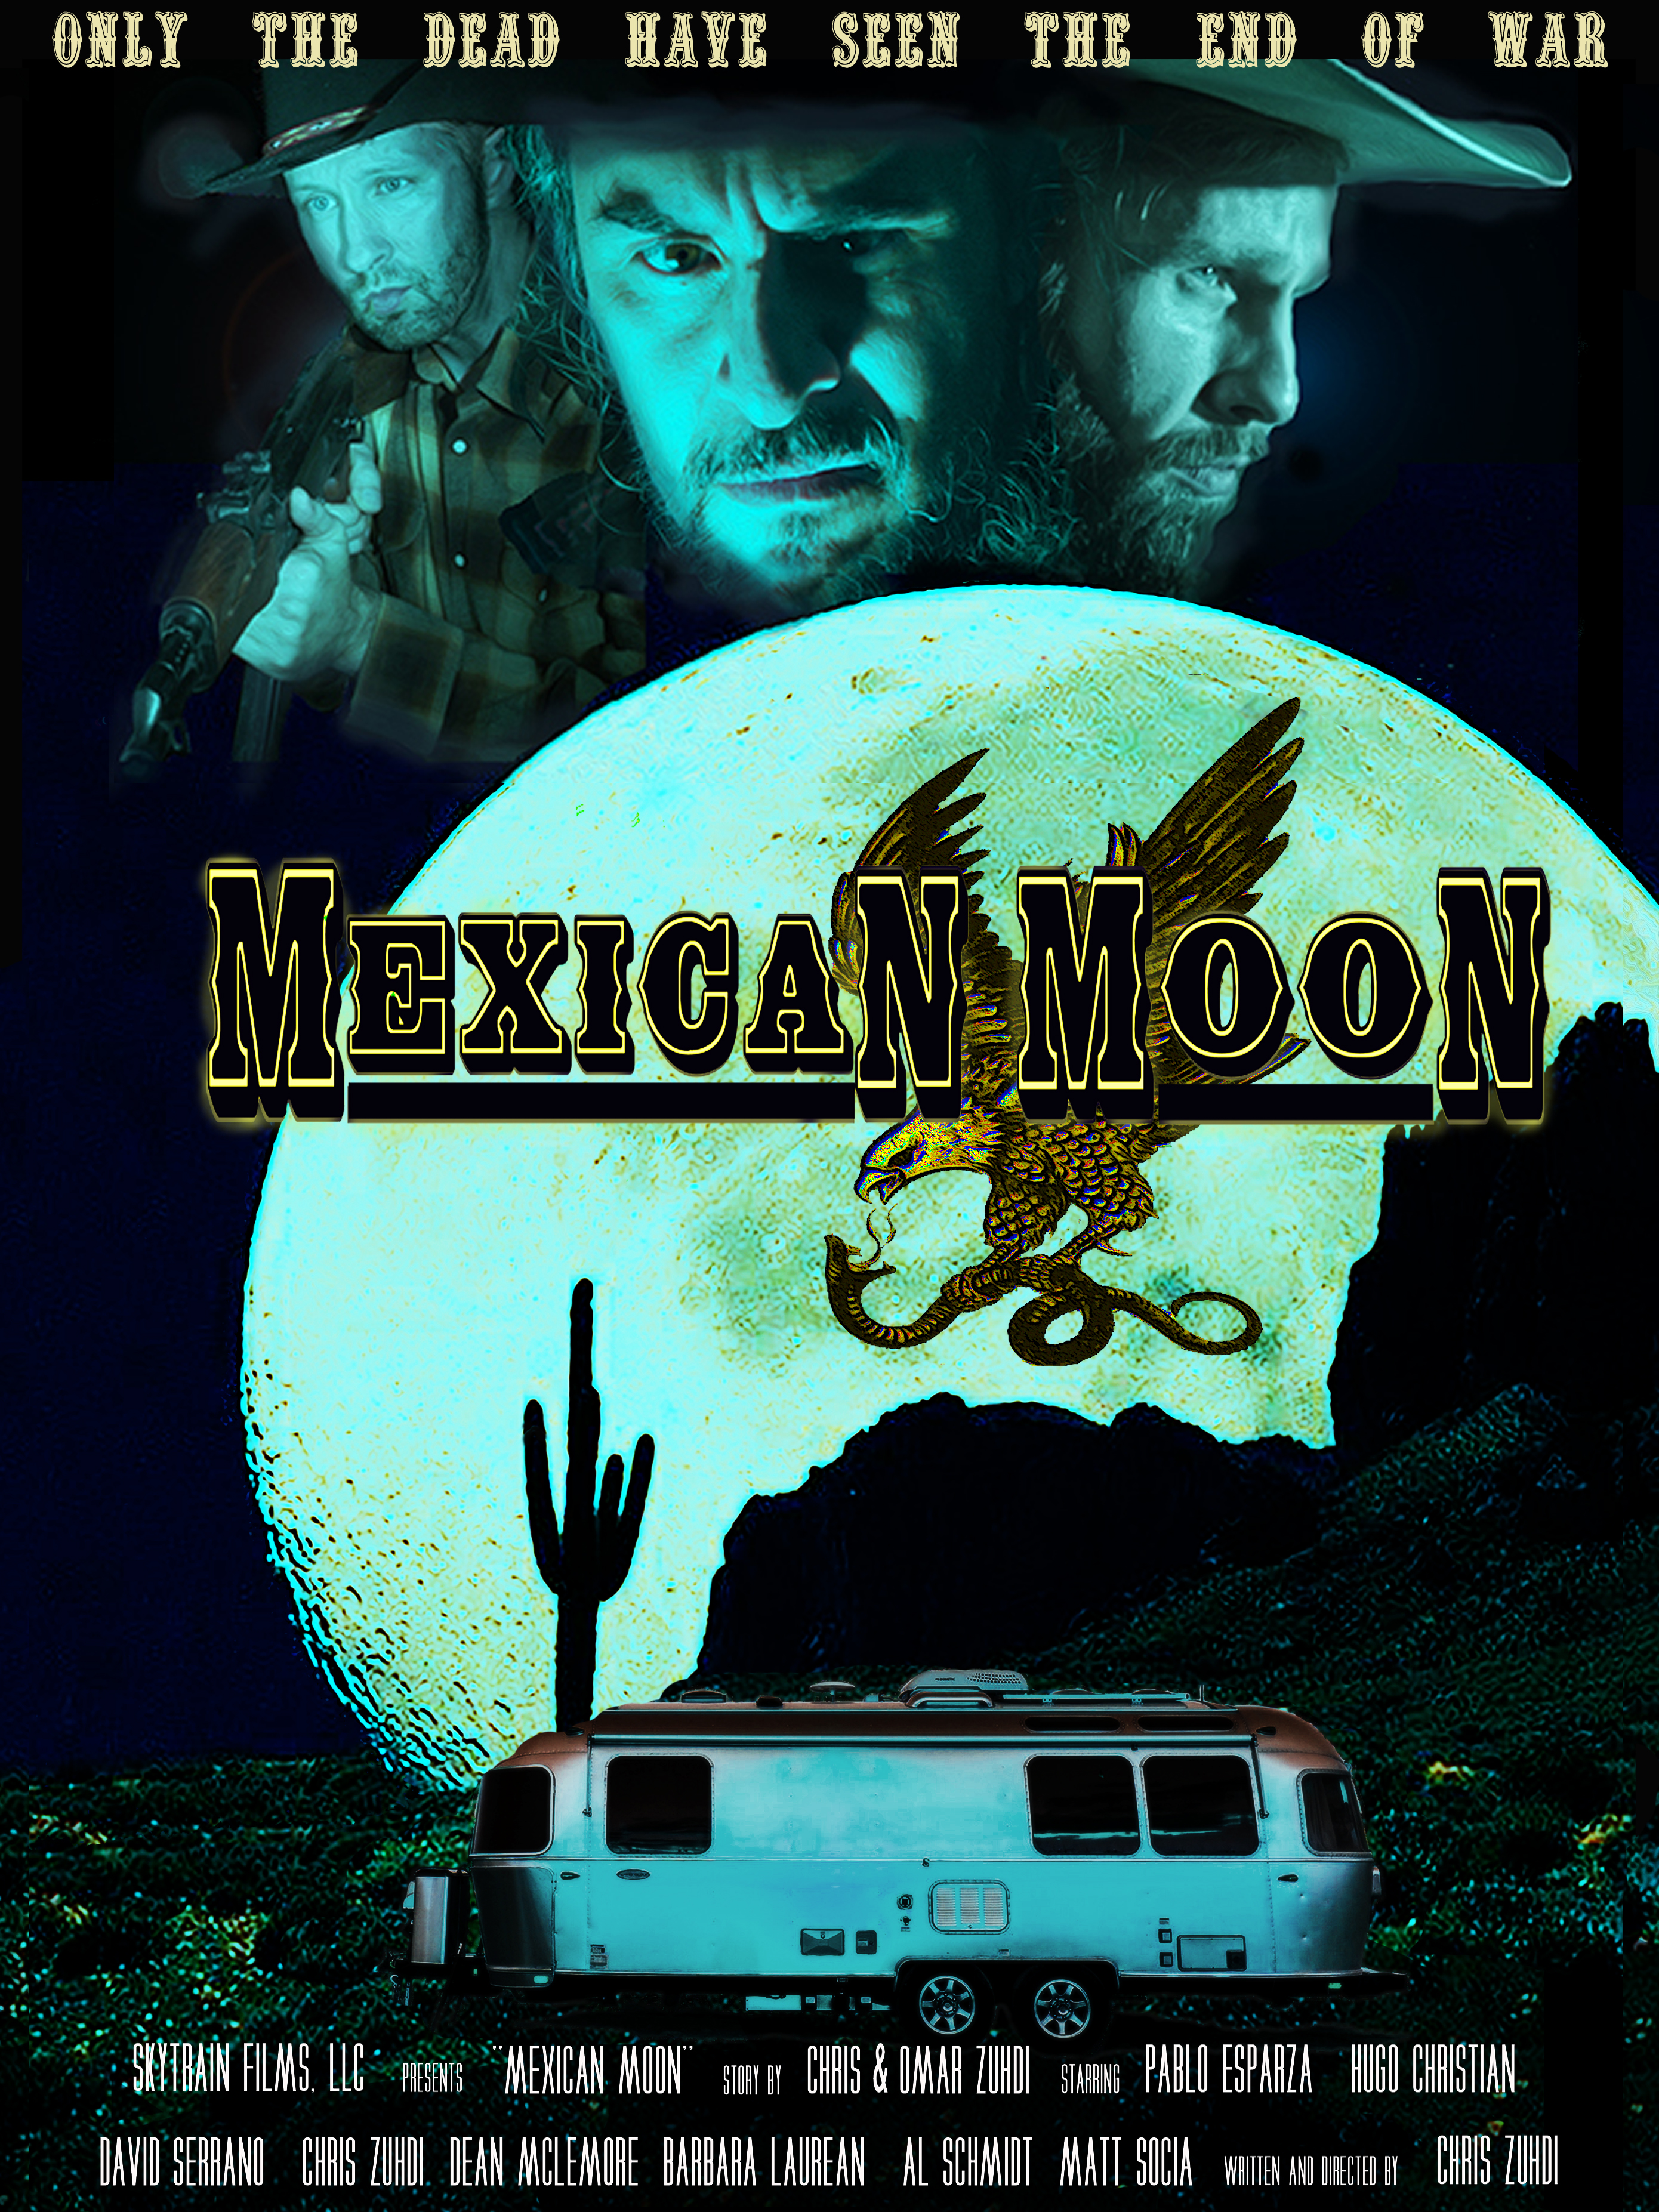 Mexican Moon (2021) Telugu Dubbed (Voice Over) & English [Dual Audio] WebRip 720p [1XBET]